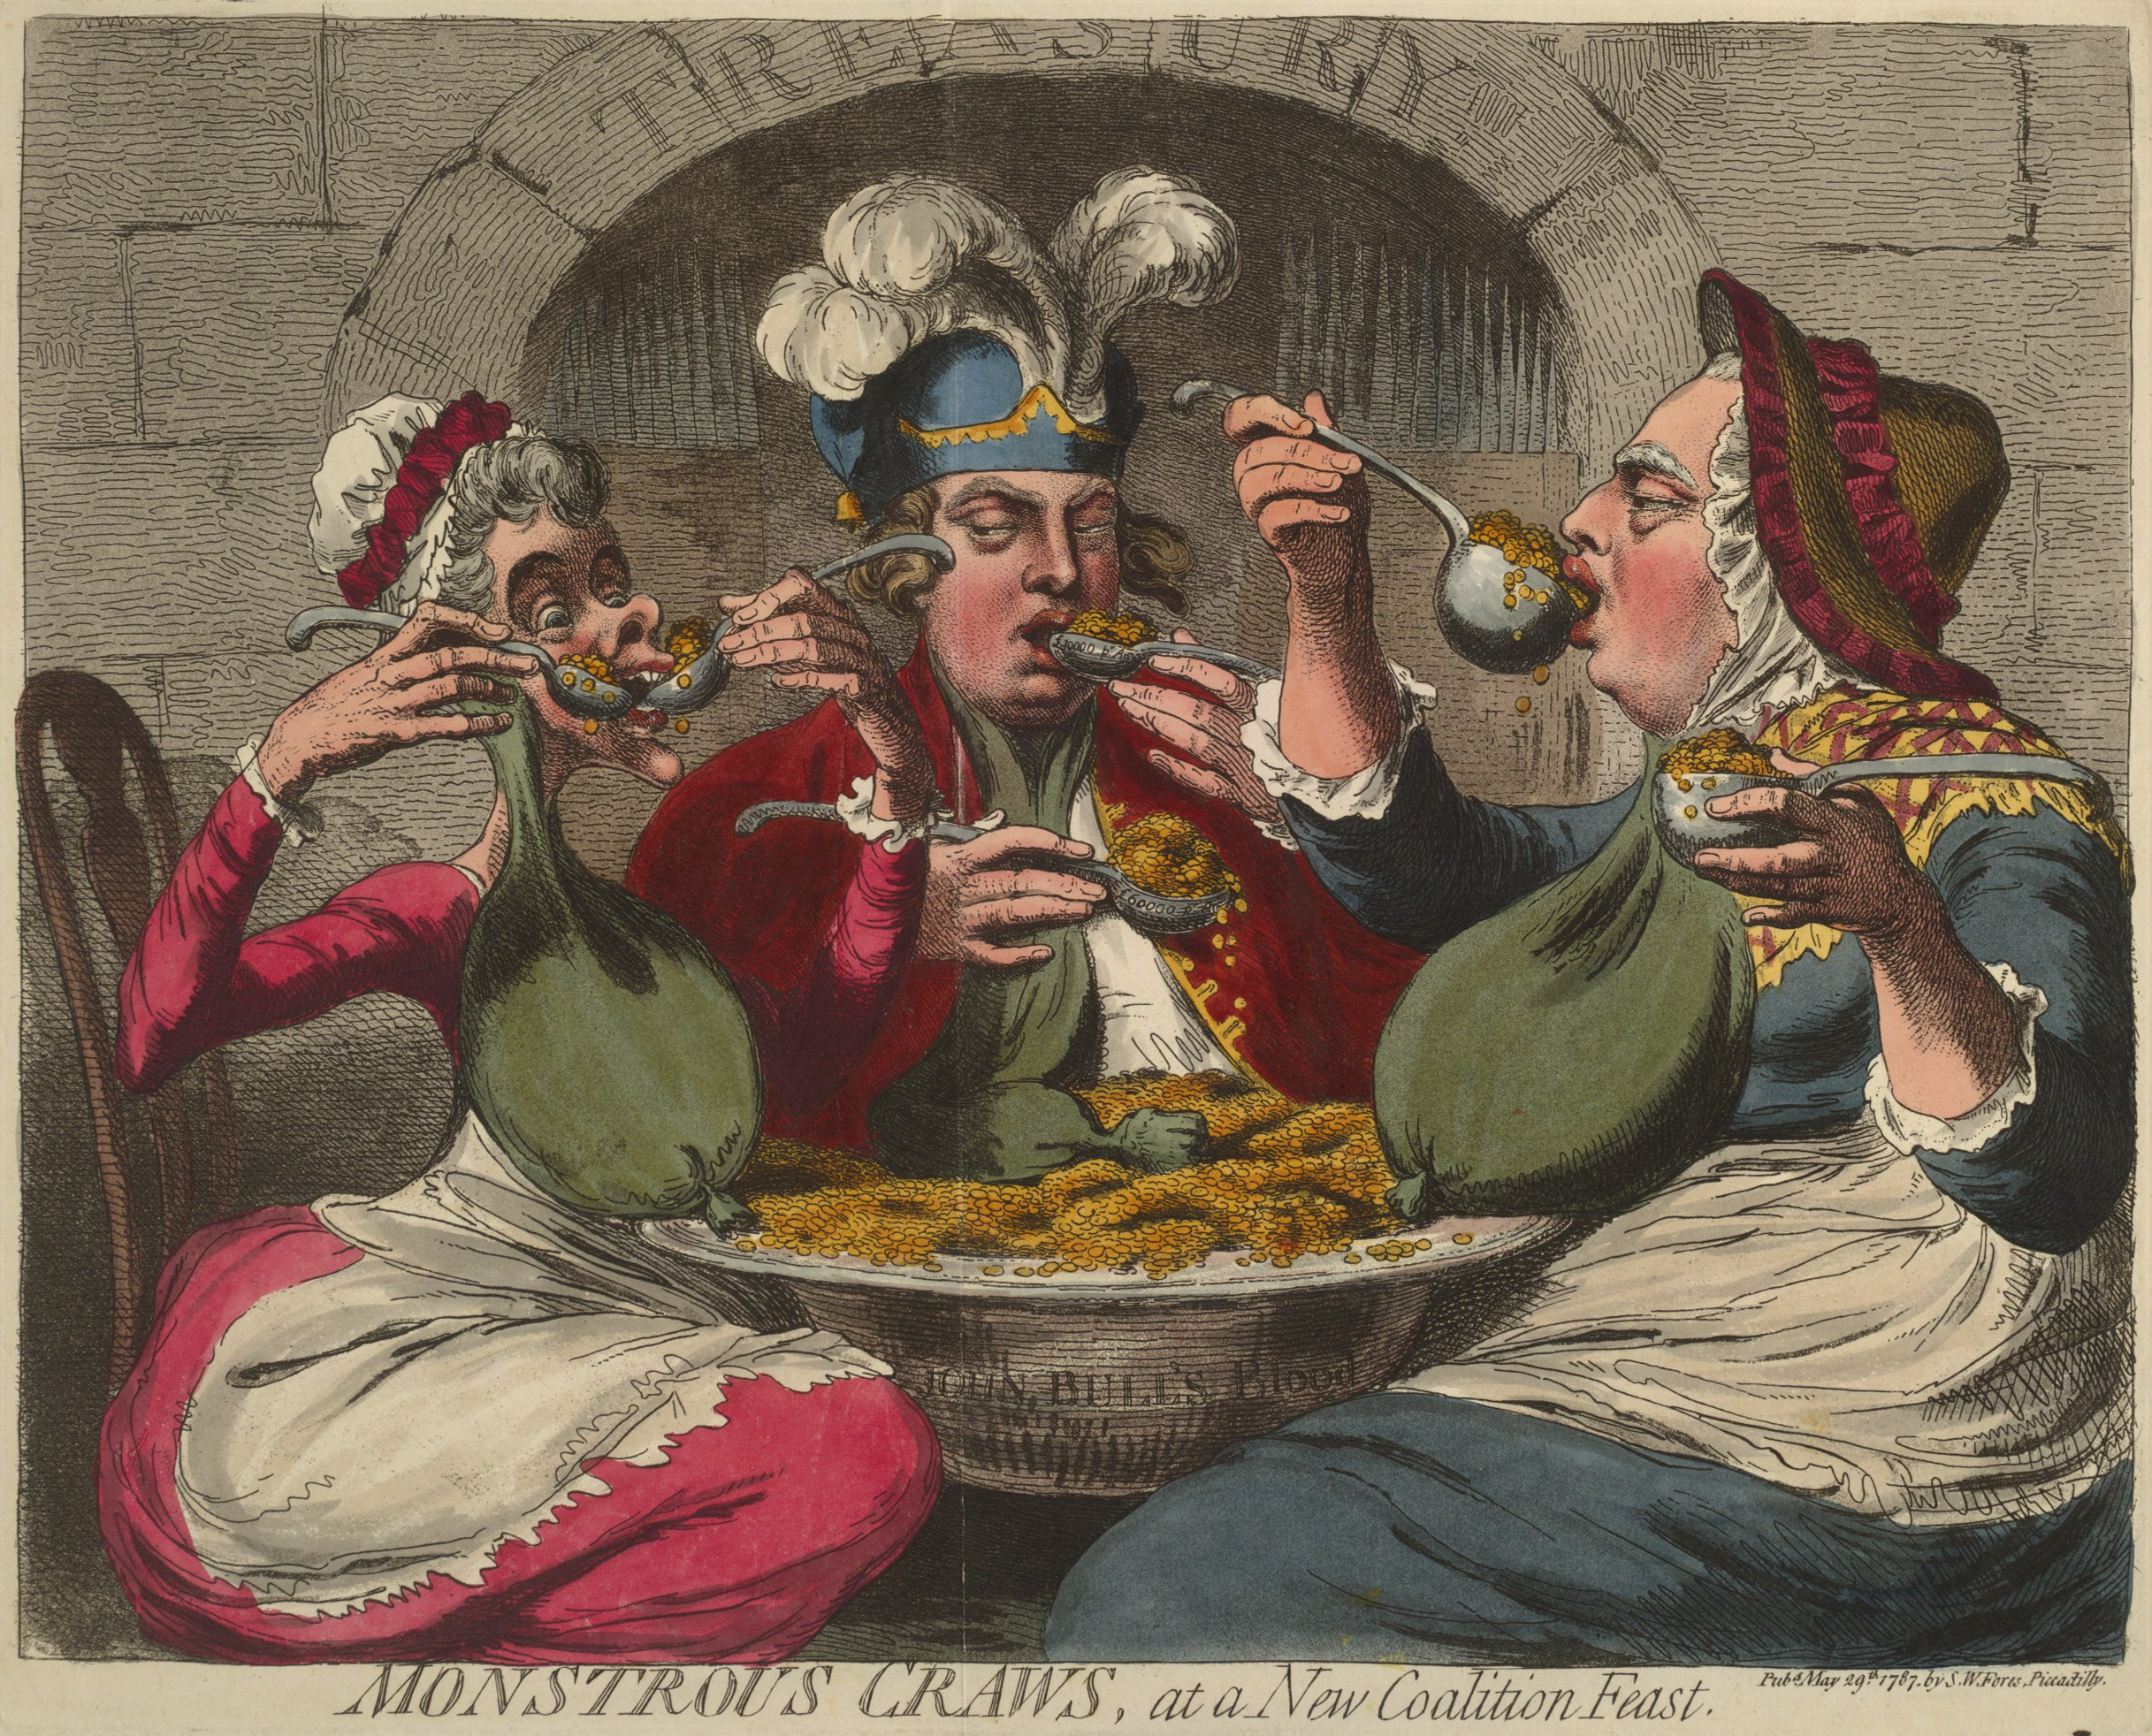 Monstrous Craws at a new Coalition Feast